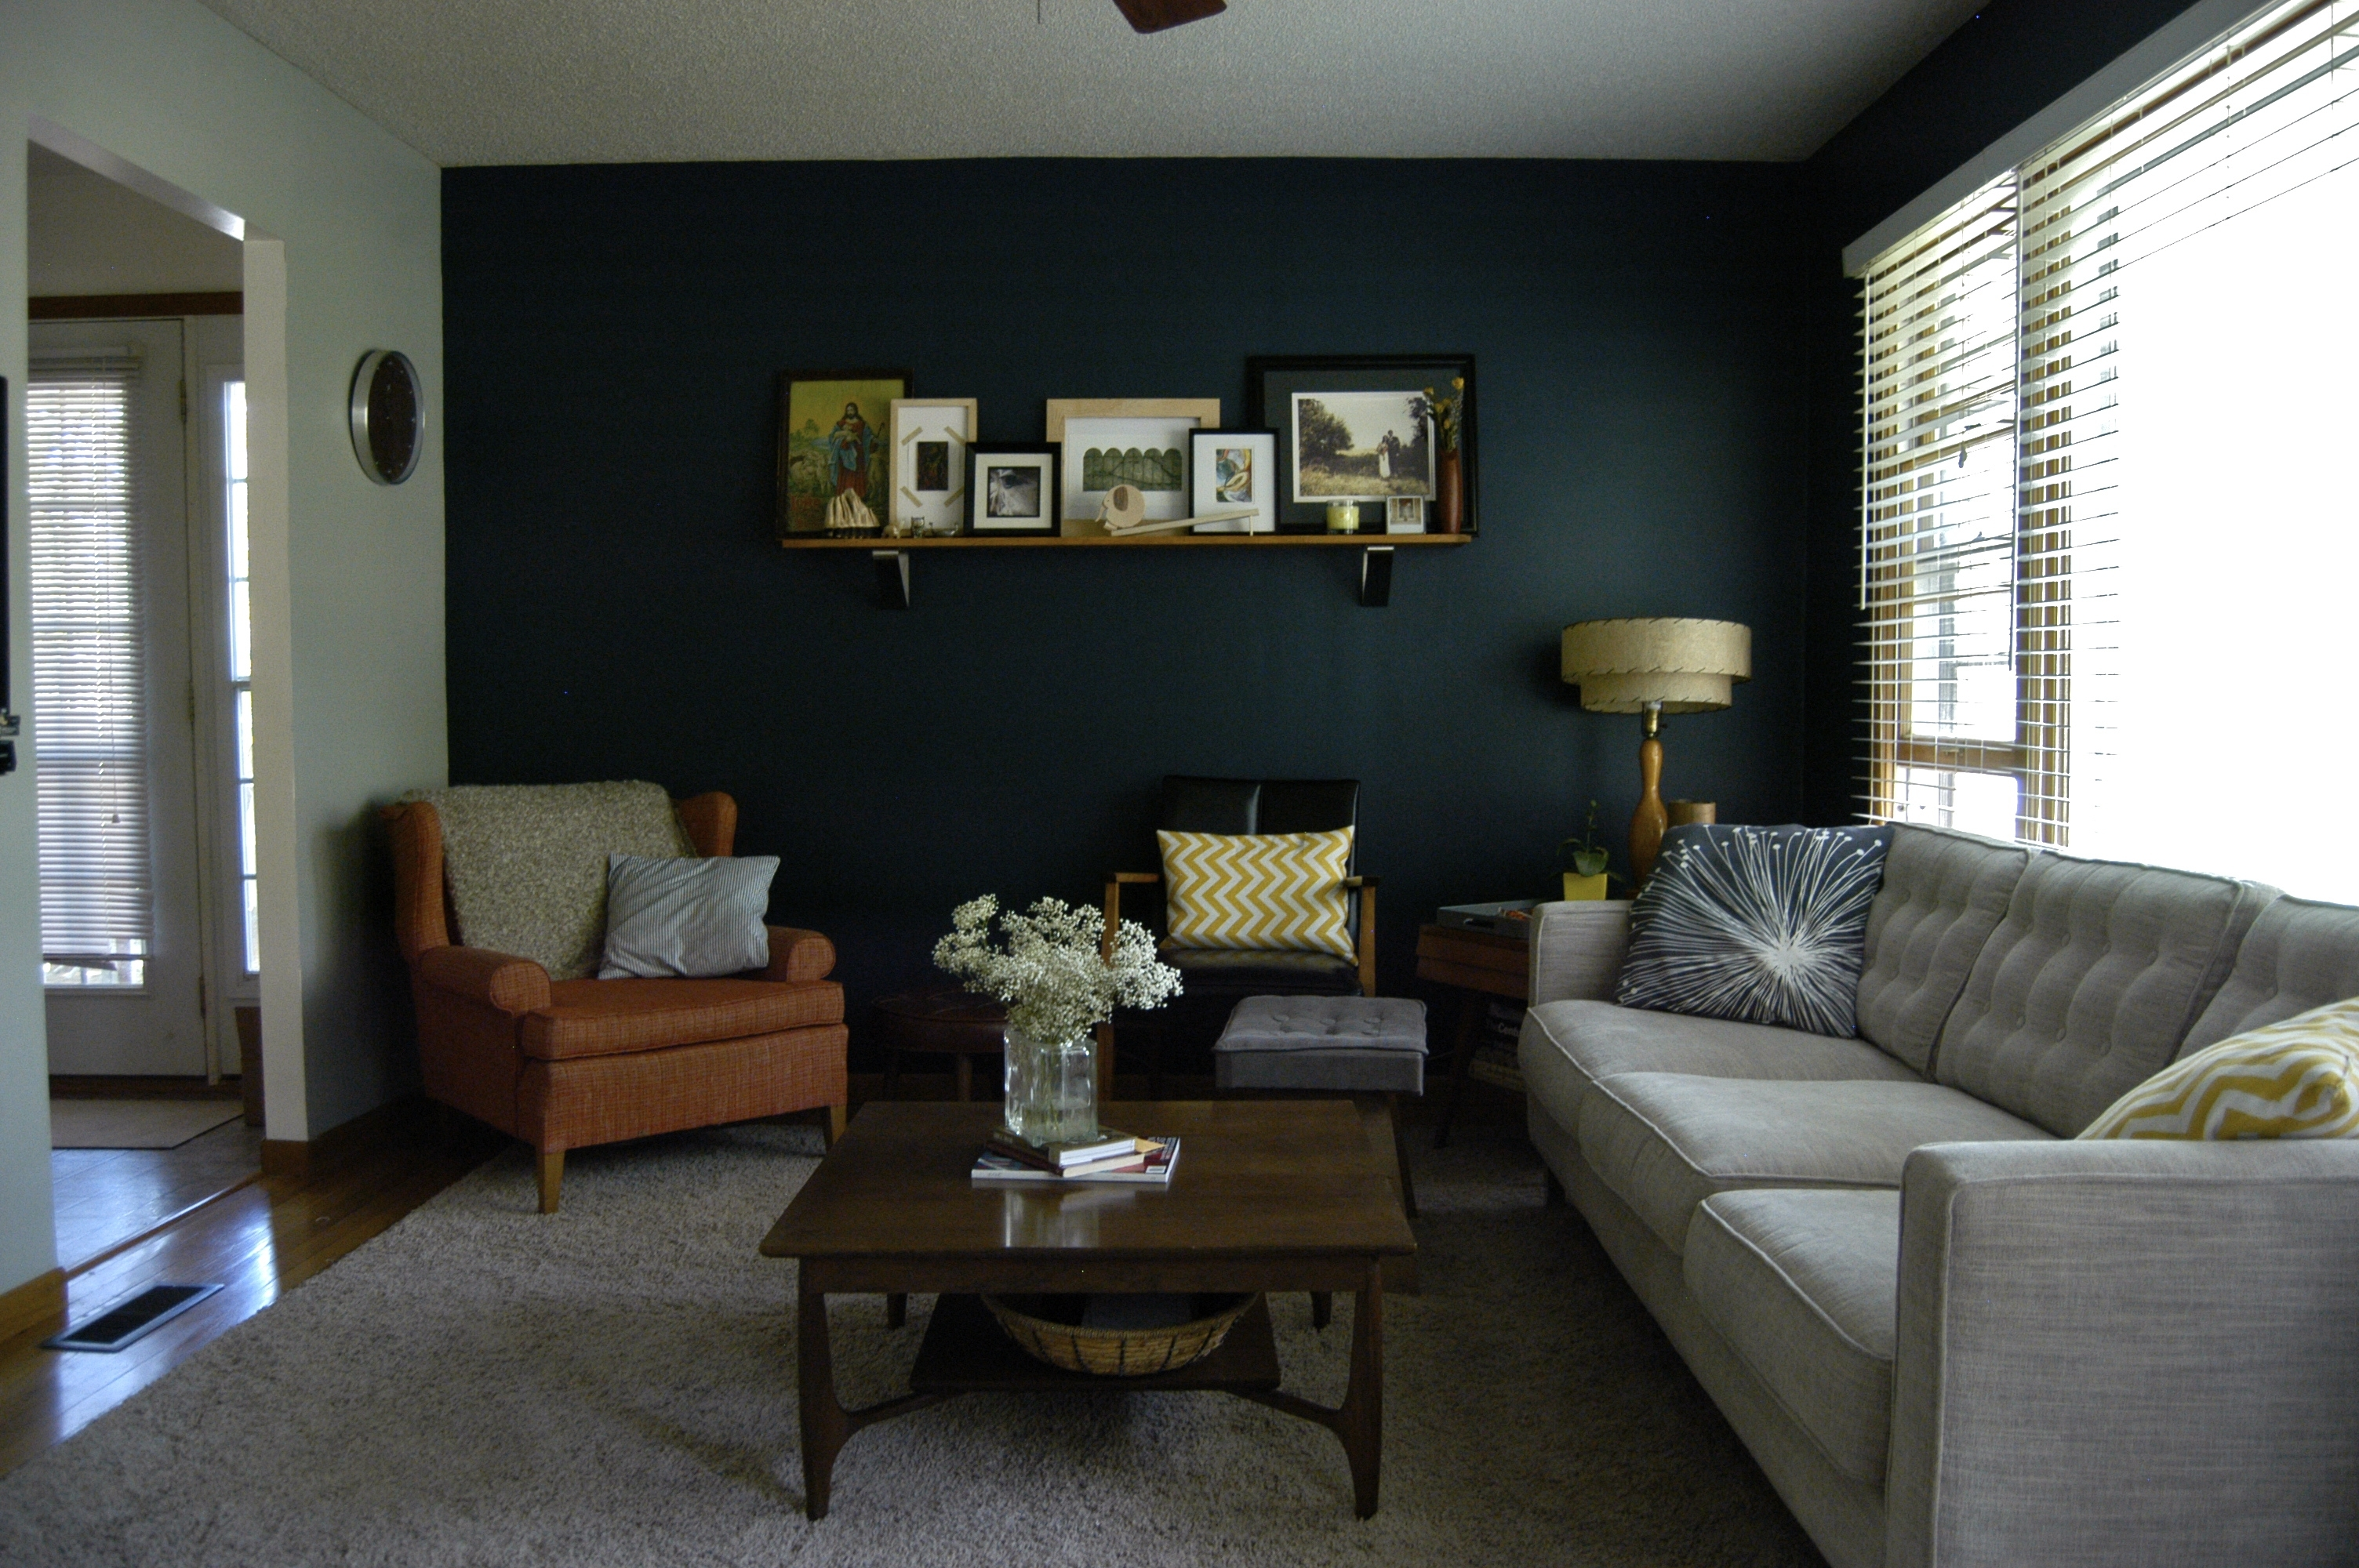 Our New Navy Accent Wall! The Other Walls Are A Medium Gray Pertaining To 2017 Wall Accents With Paint (View 7 of 15)